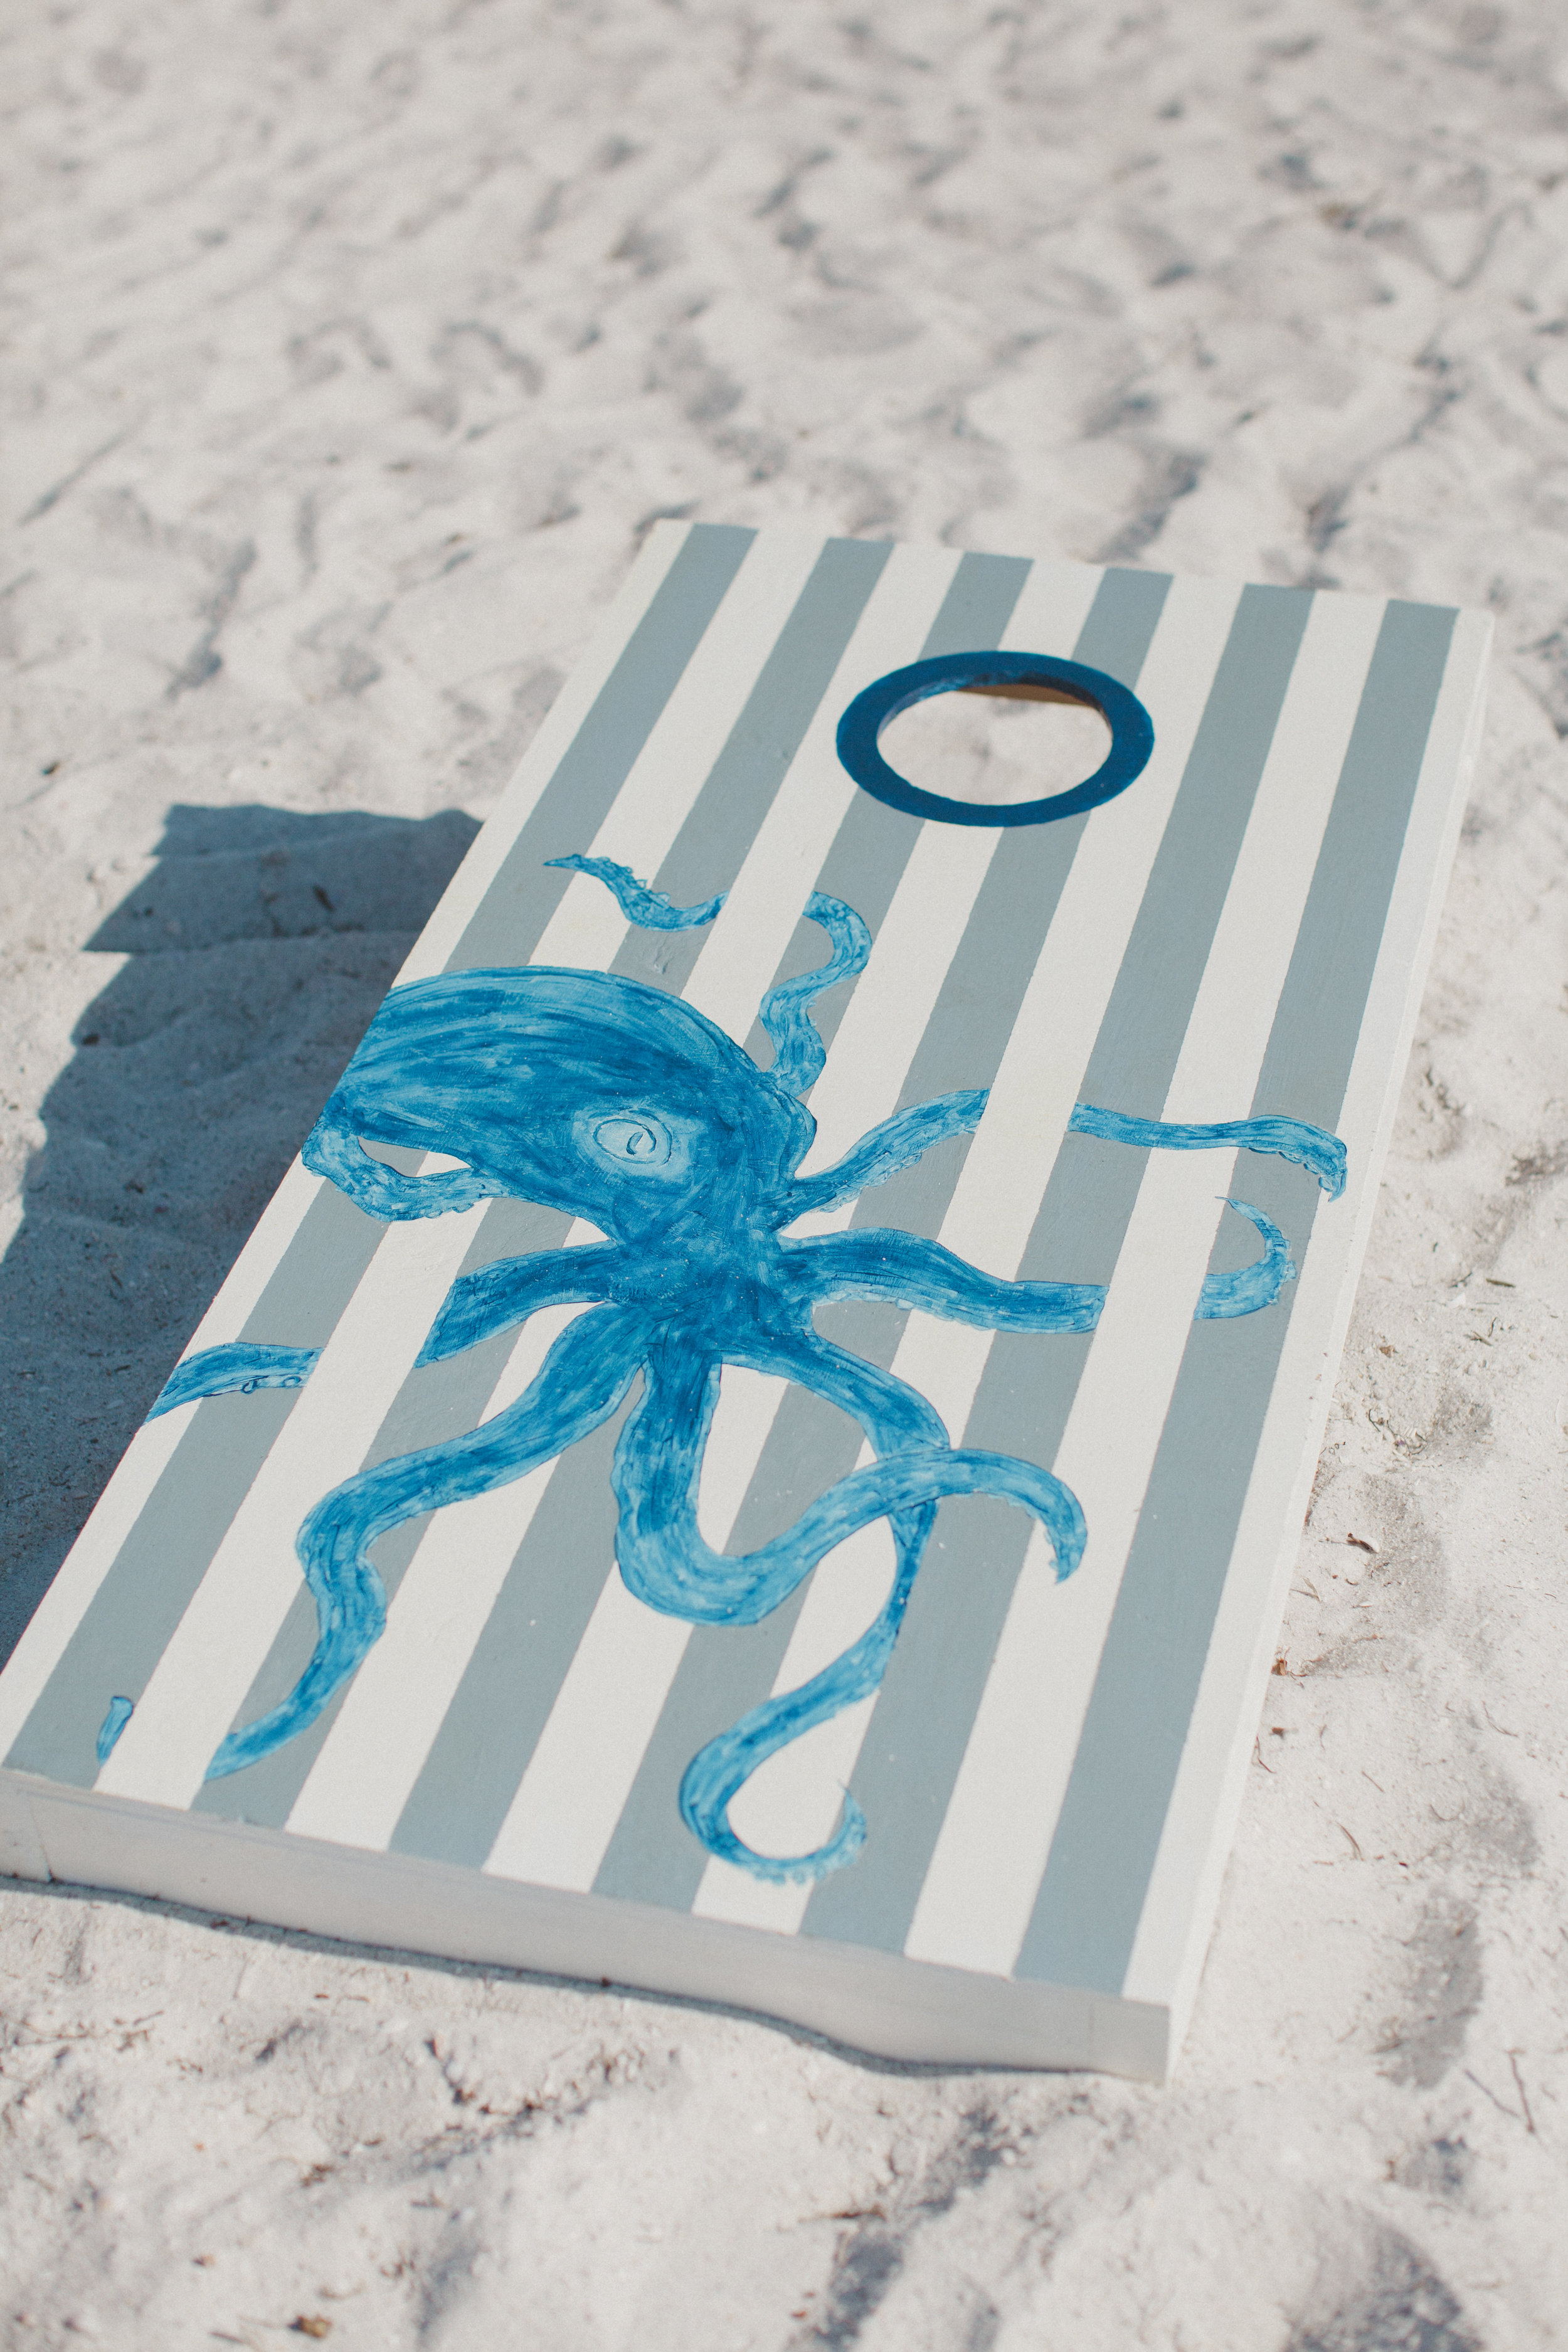 Ory comes from quite the handy family, so when we asked his dad and brother if they would build us some custom corn hole sets for the cocktail hour they were totally up for the challenge and made two different but perfectly complementary sets. And of course, one of them just had to feature the octopus :)